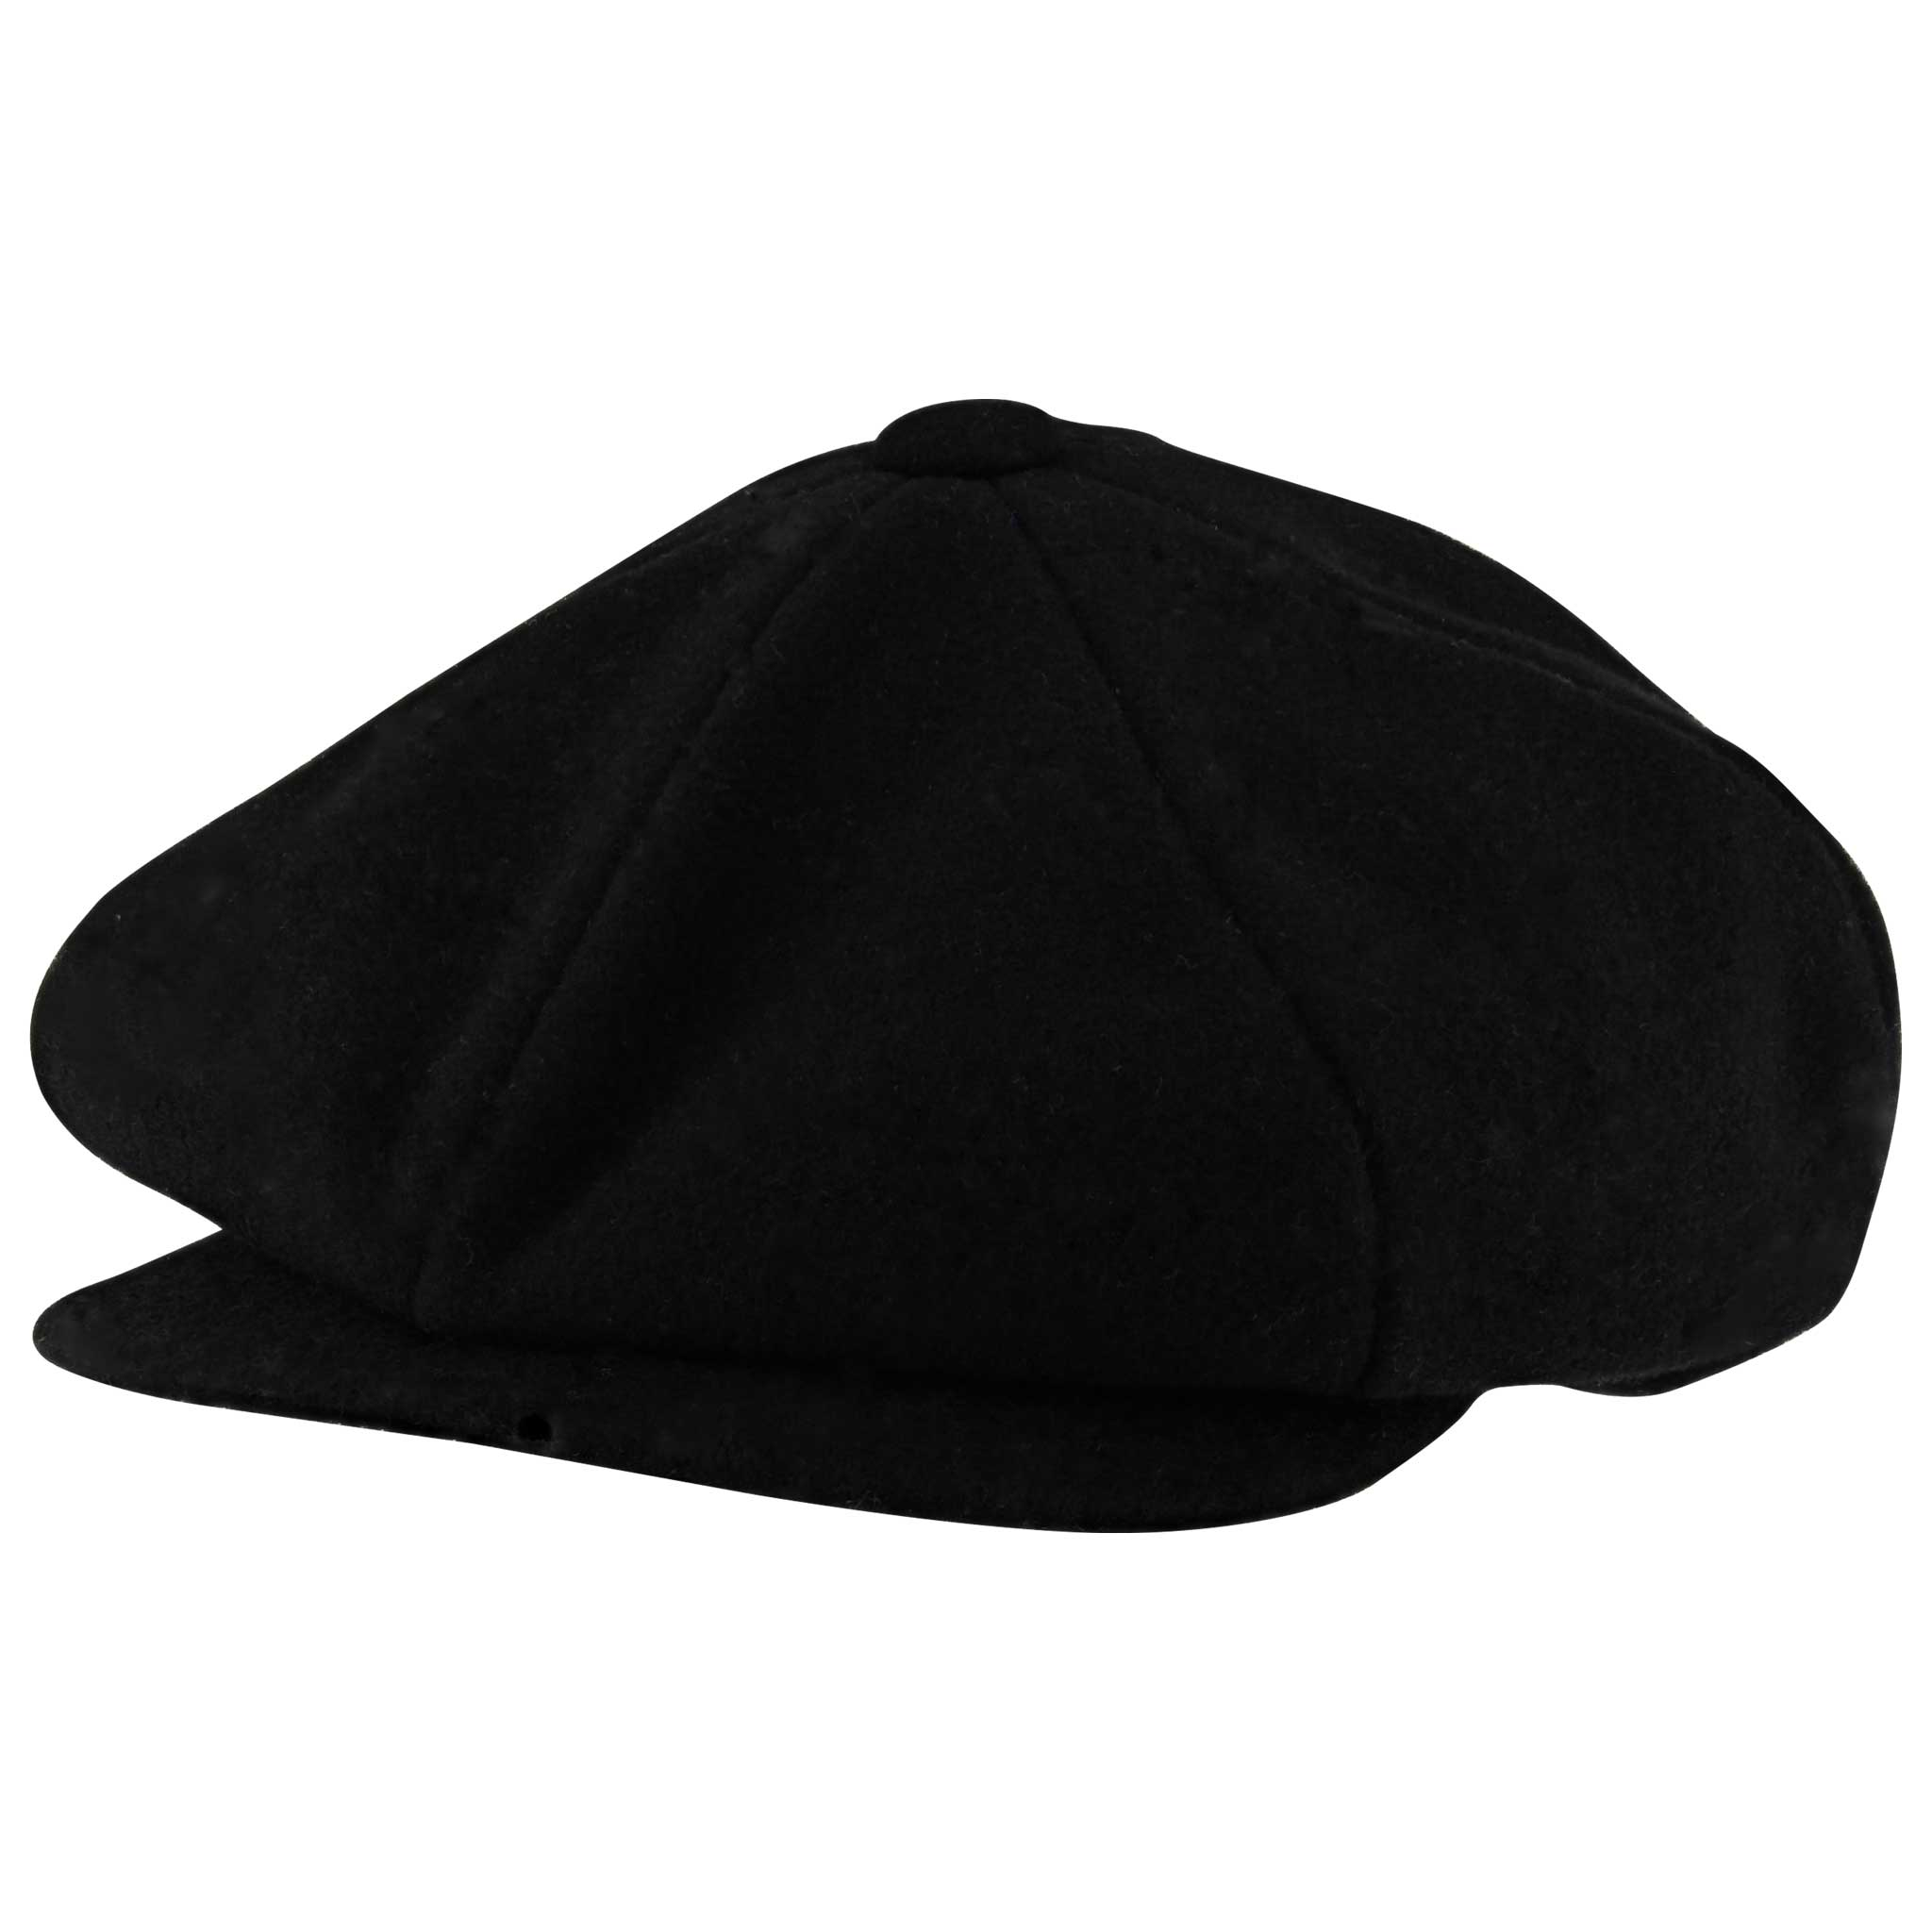 New York Hat Company Wool Newsboy Black Front View ... bae0a989b6f3